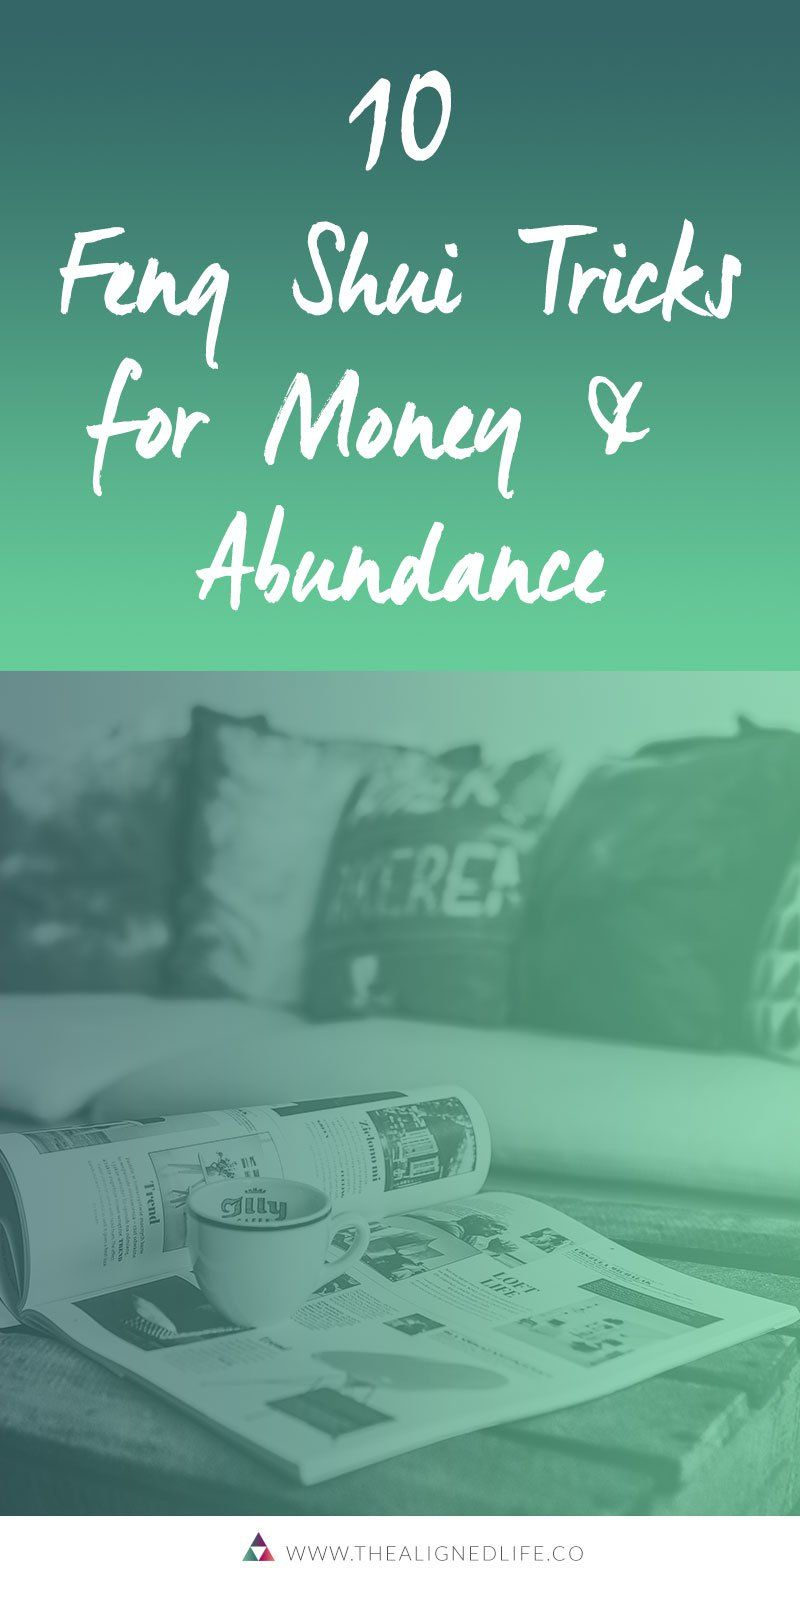 Feng Shui Geld 10 Feng Shui Tricks For Money Abundance Feng Shui Pinterest